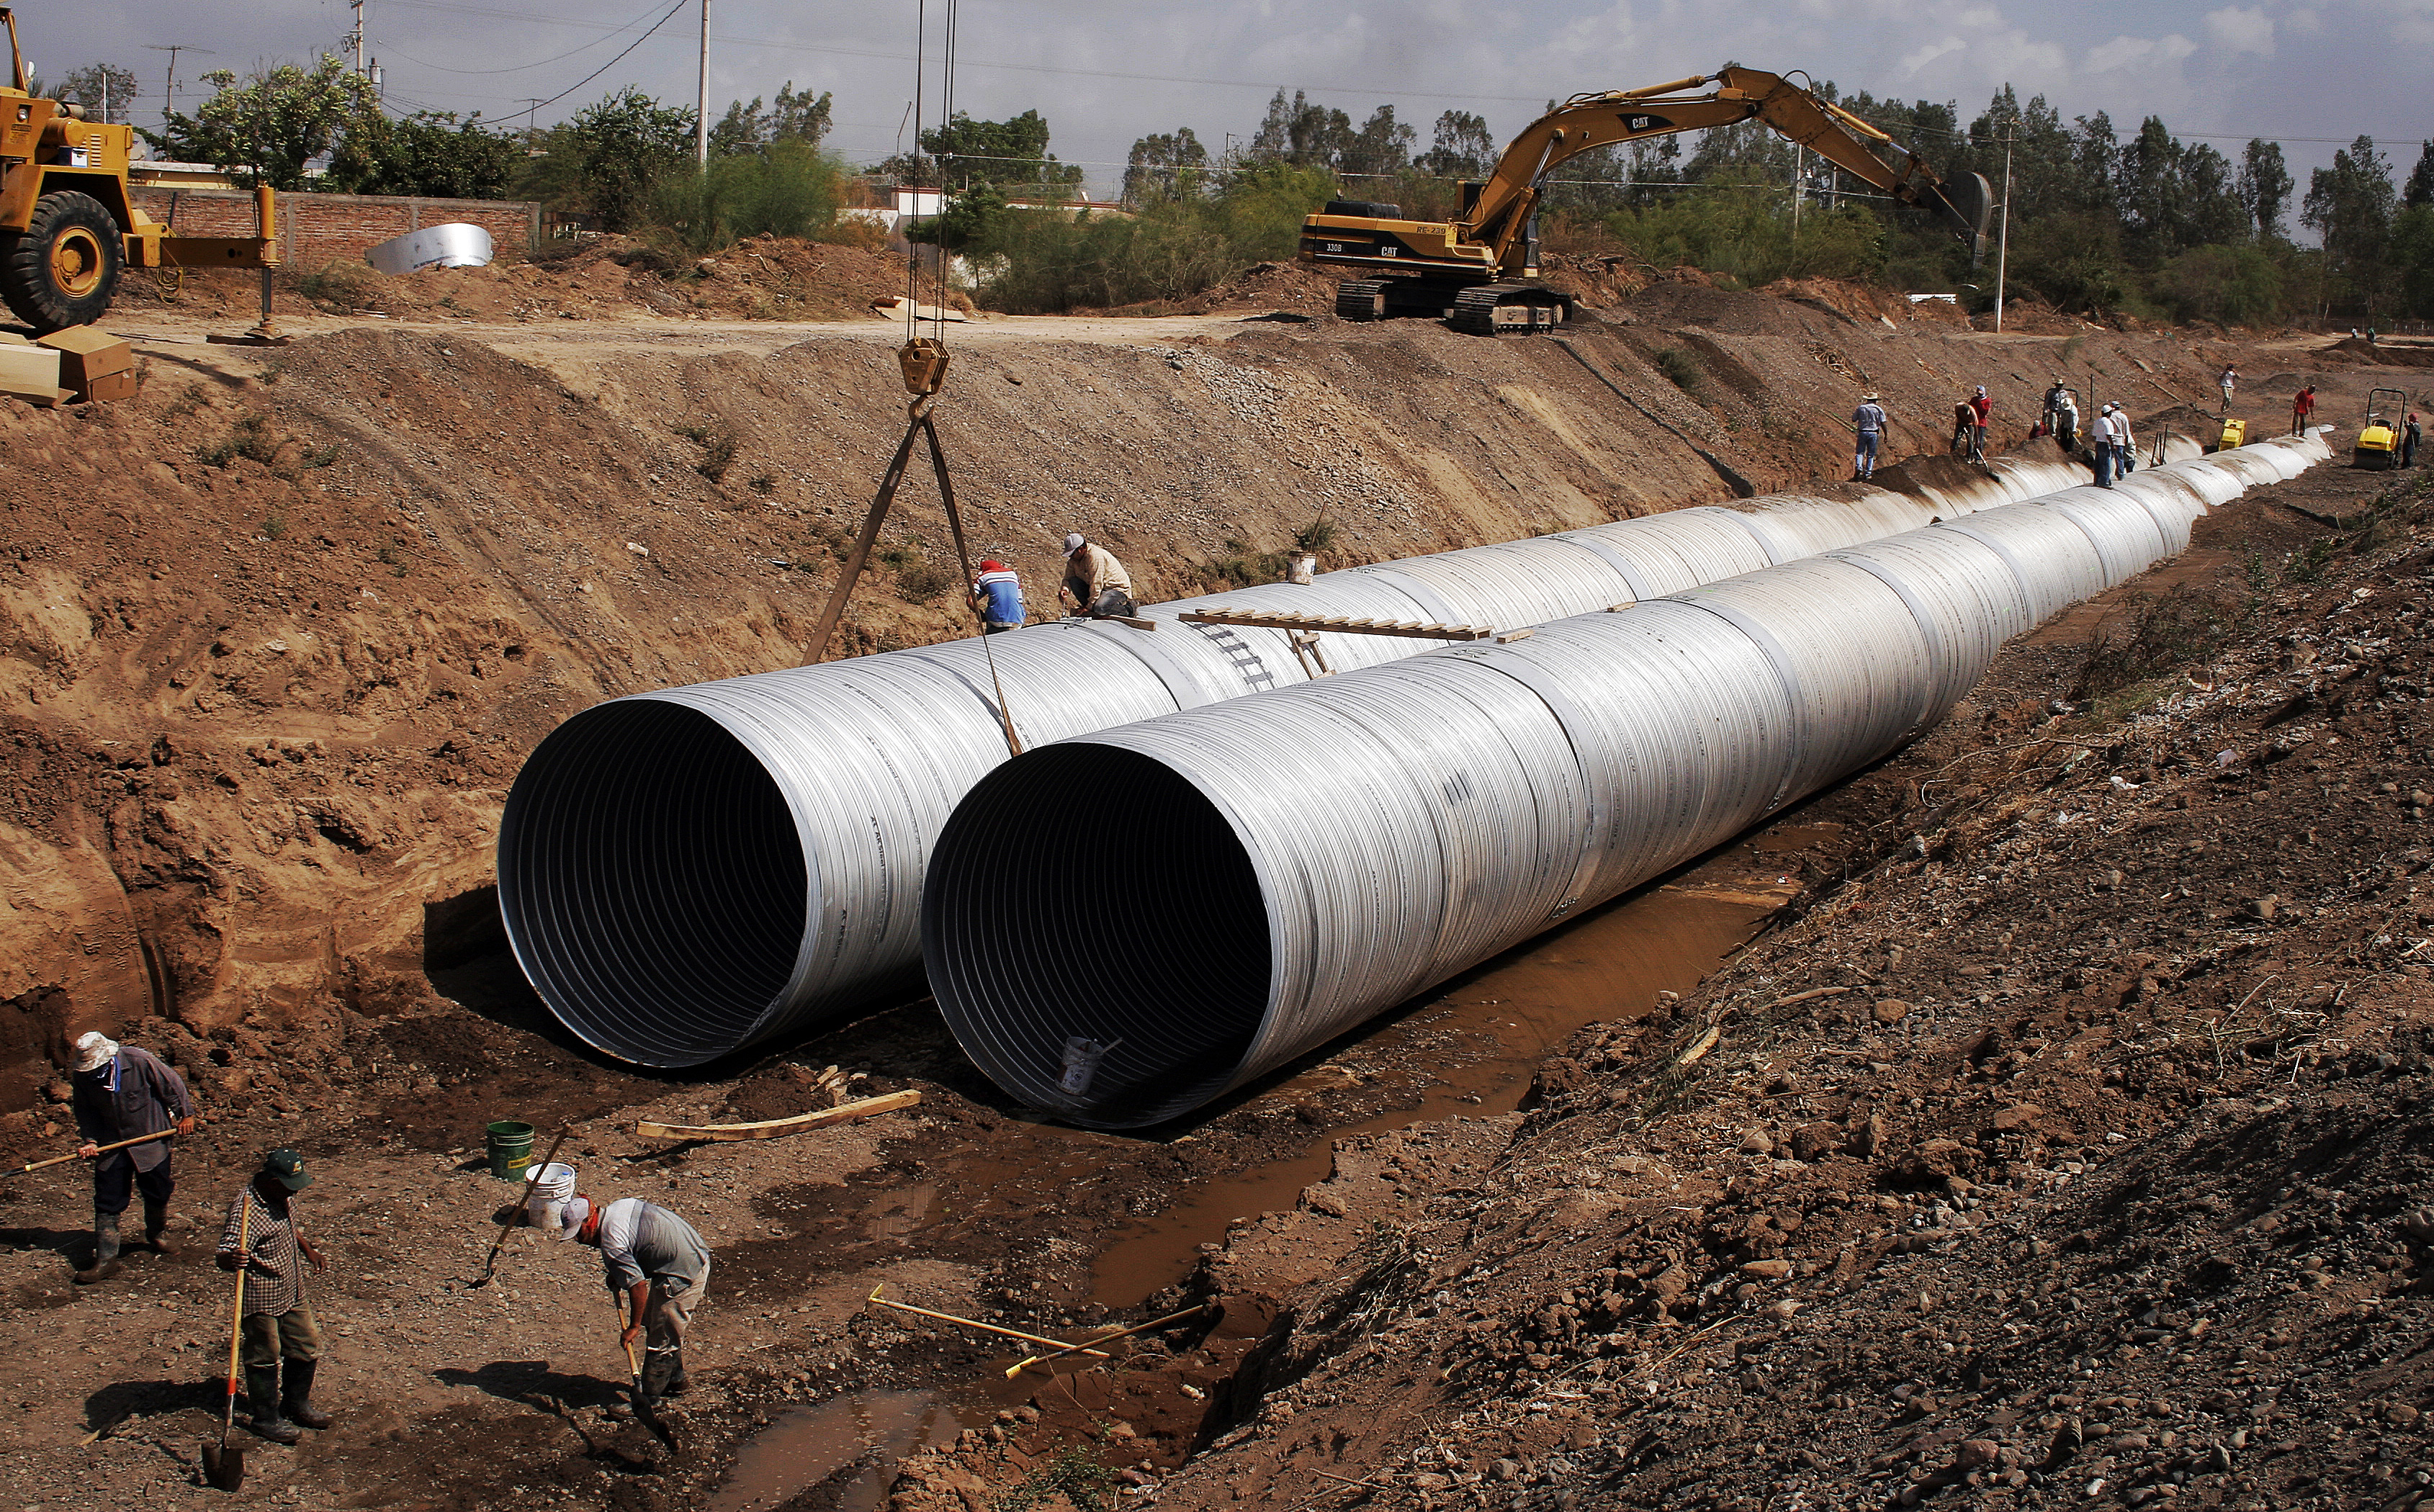 hdpe storm sewer pipe 4 in x 10 ft corex drain pipe perforated